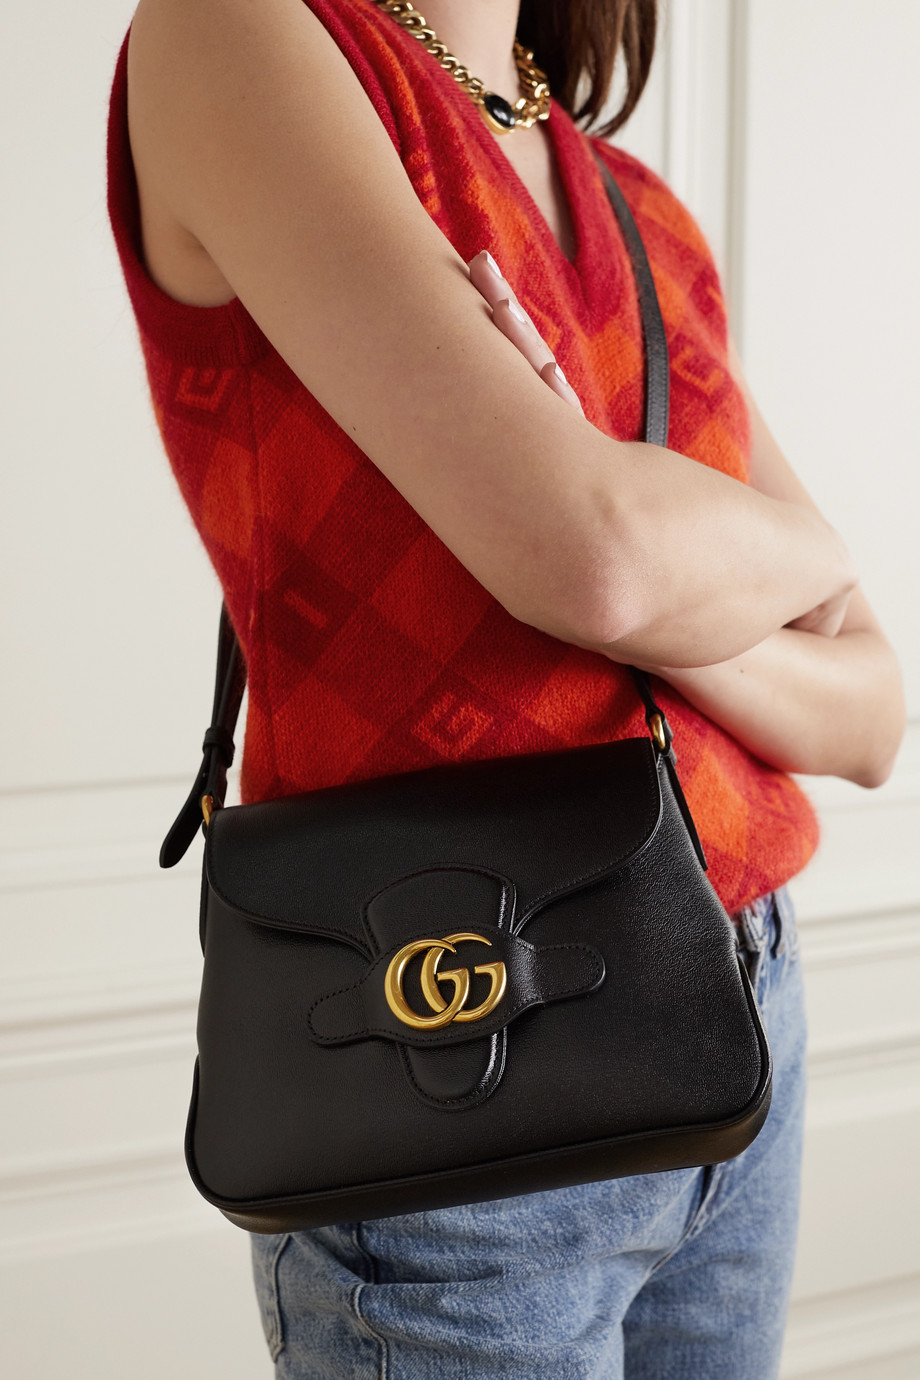 GUCCI + NET SUSTAIN Dahlia textured-leather shoulder bag